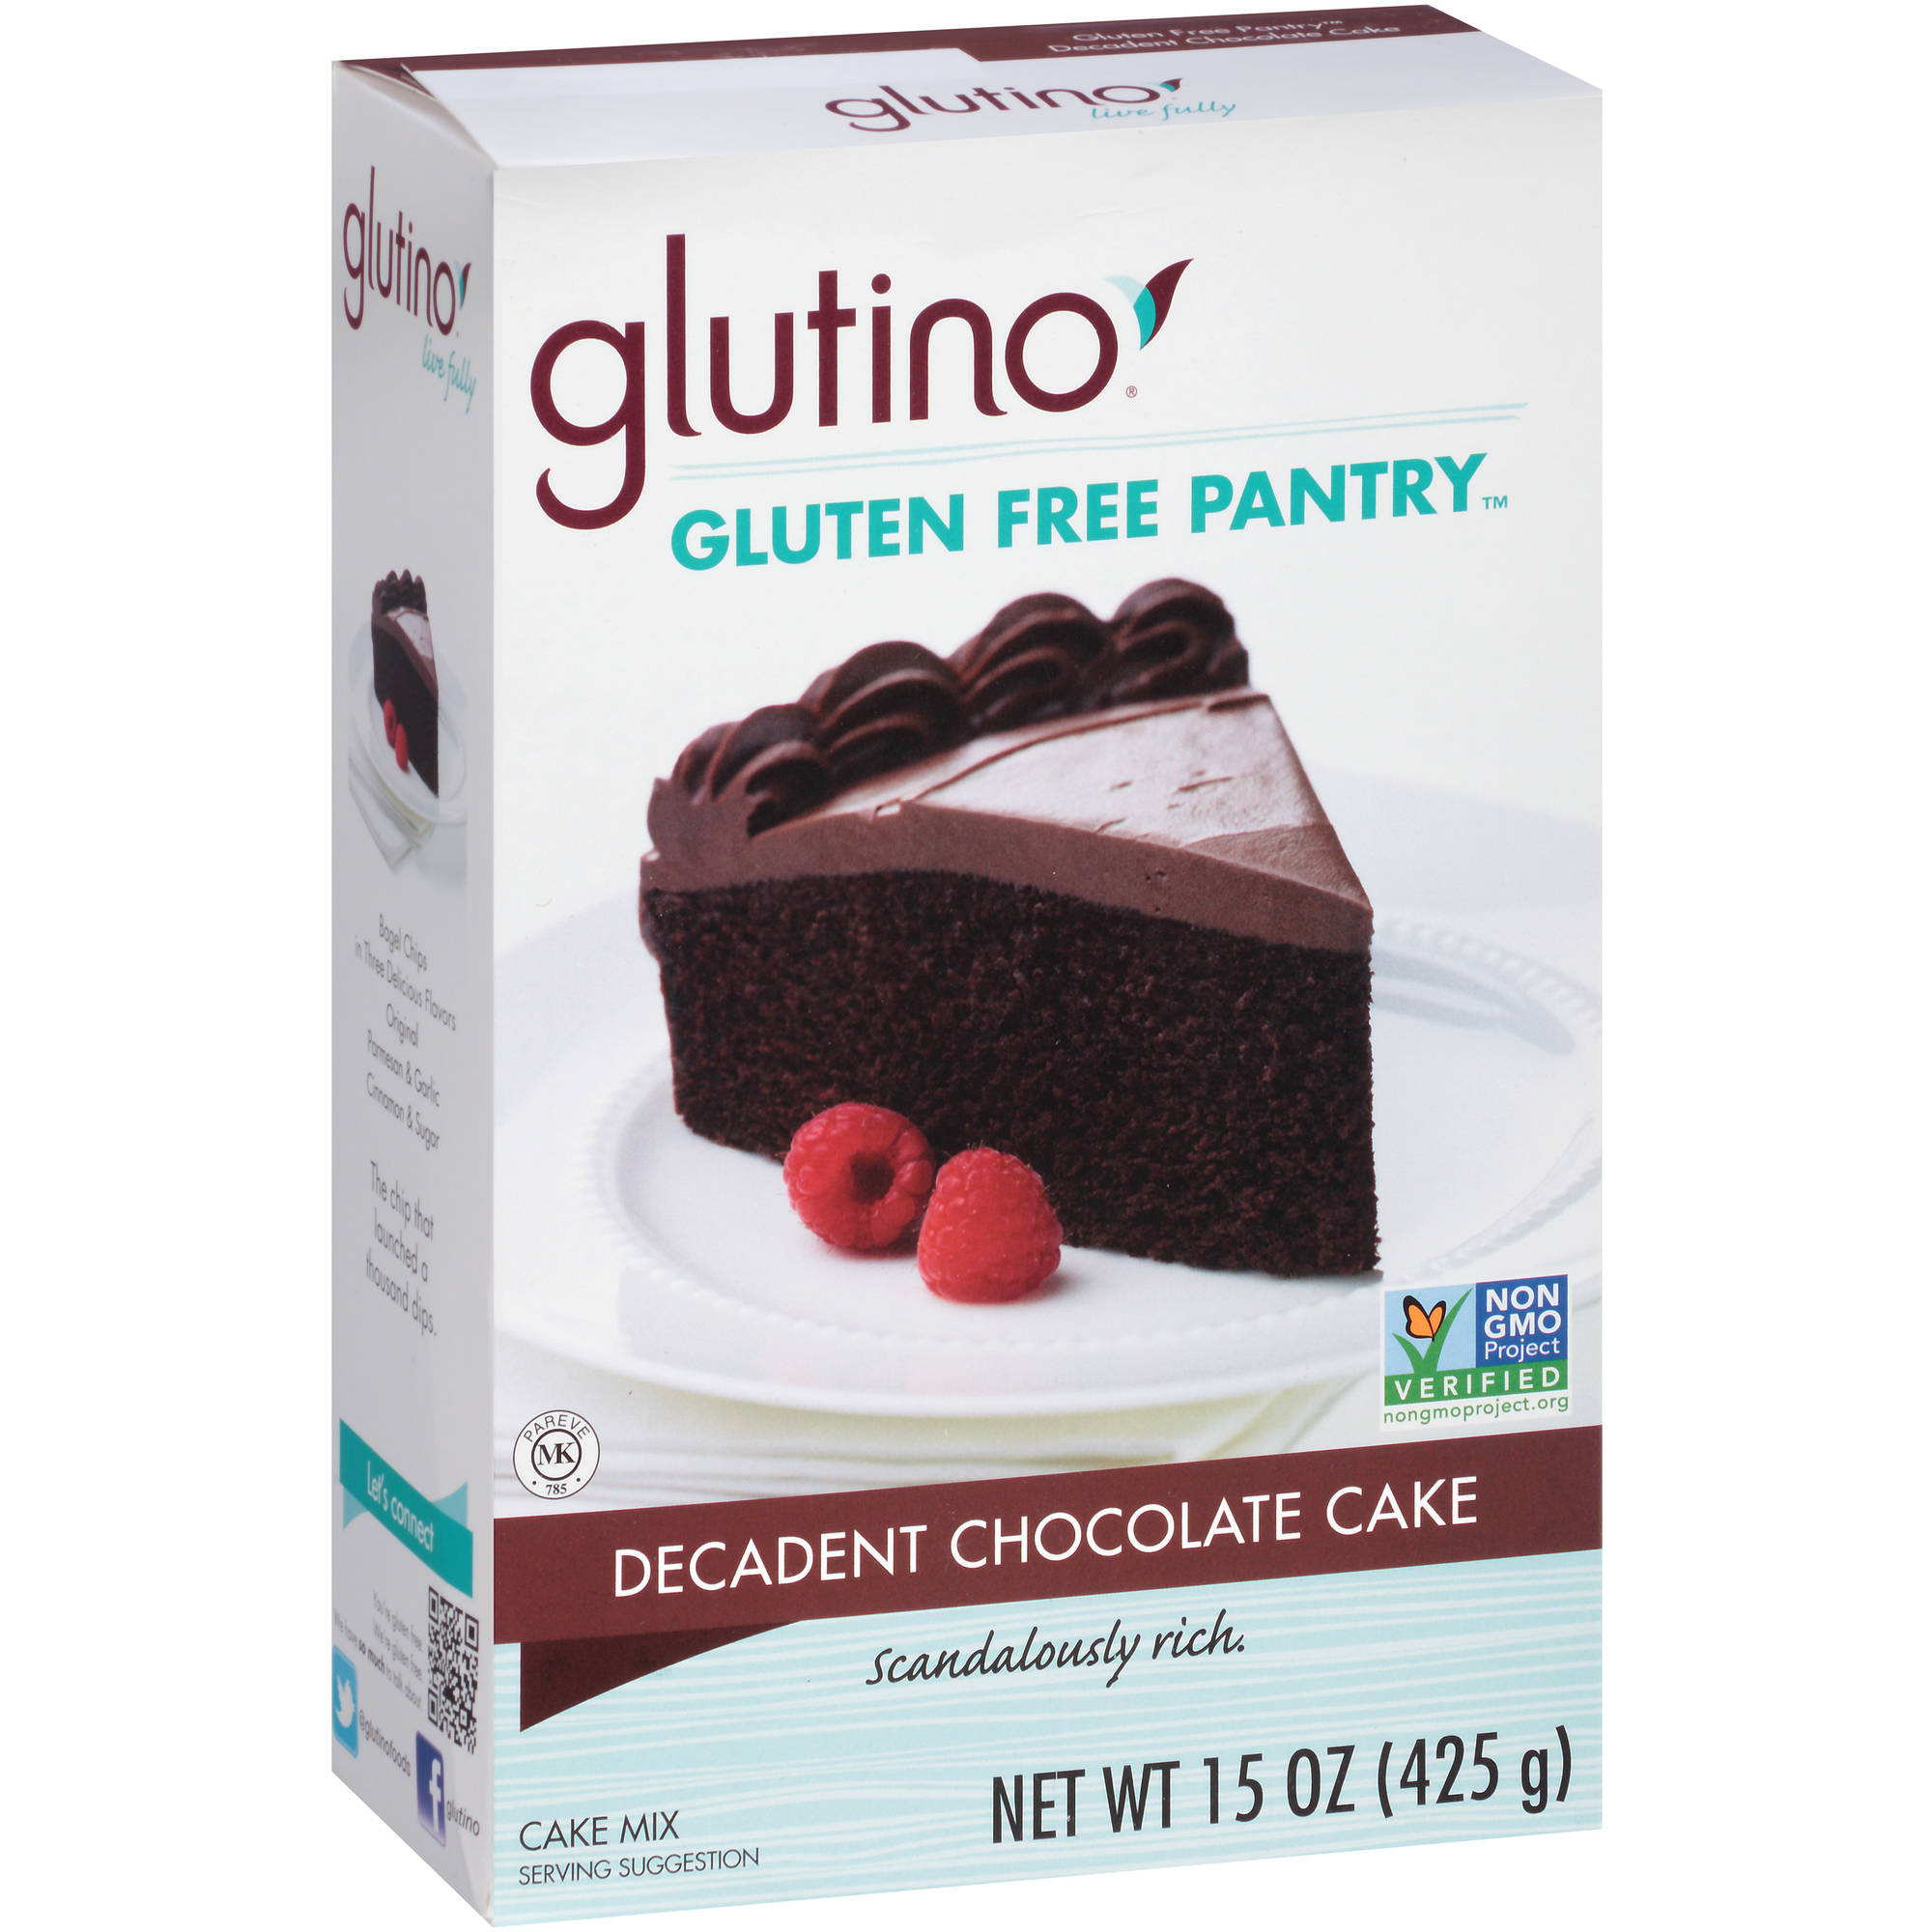 Glutino Gluten Free Pantry Decadent Chocolate Cake Mix, 15 oz